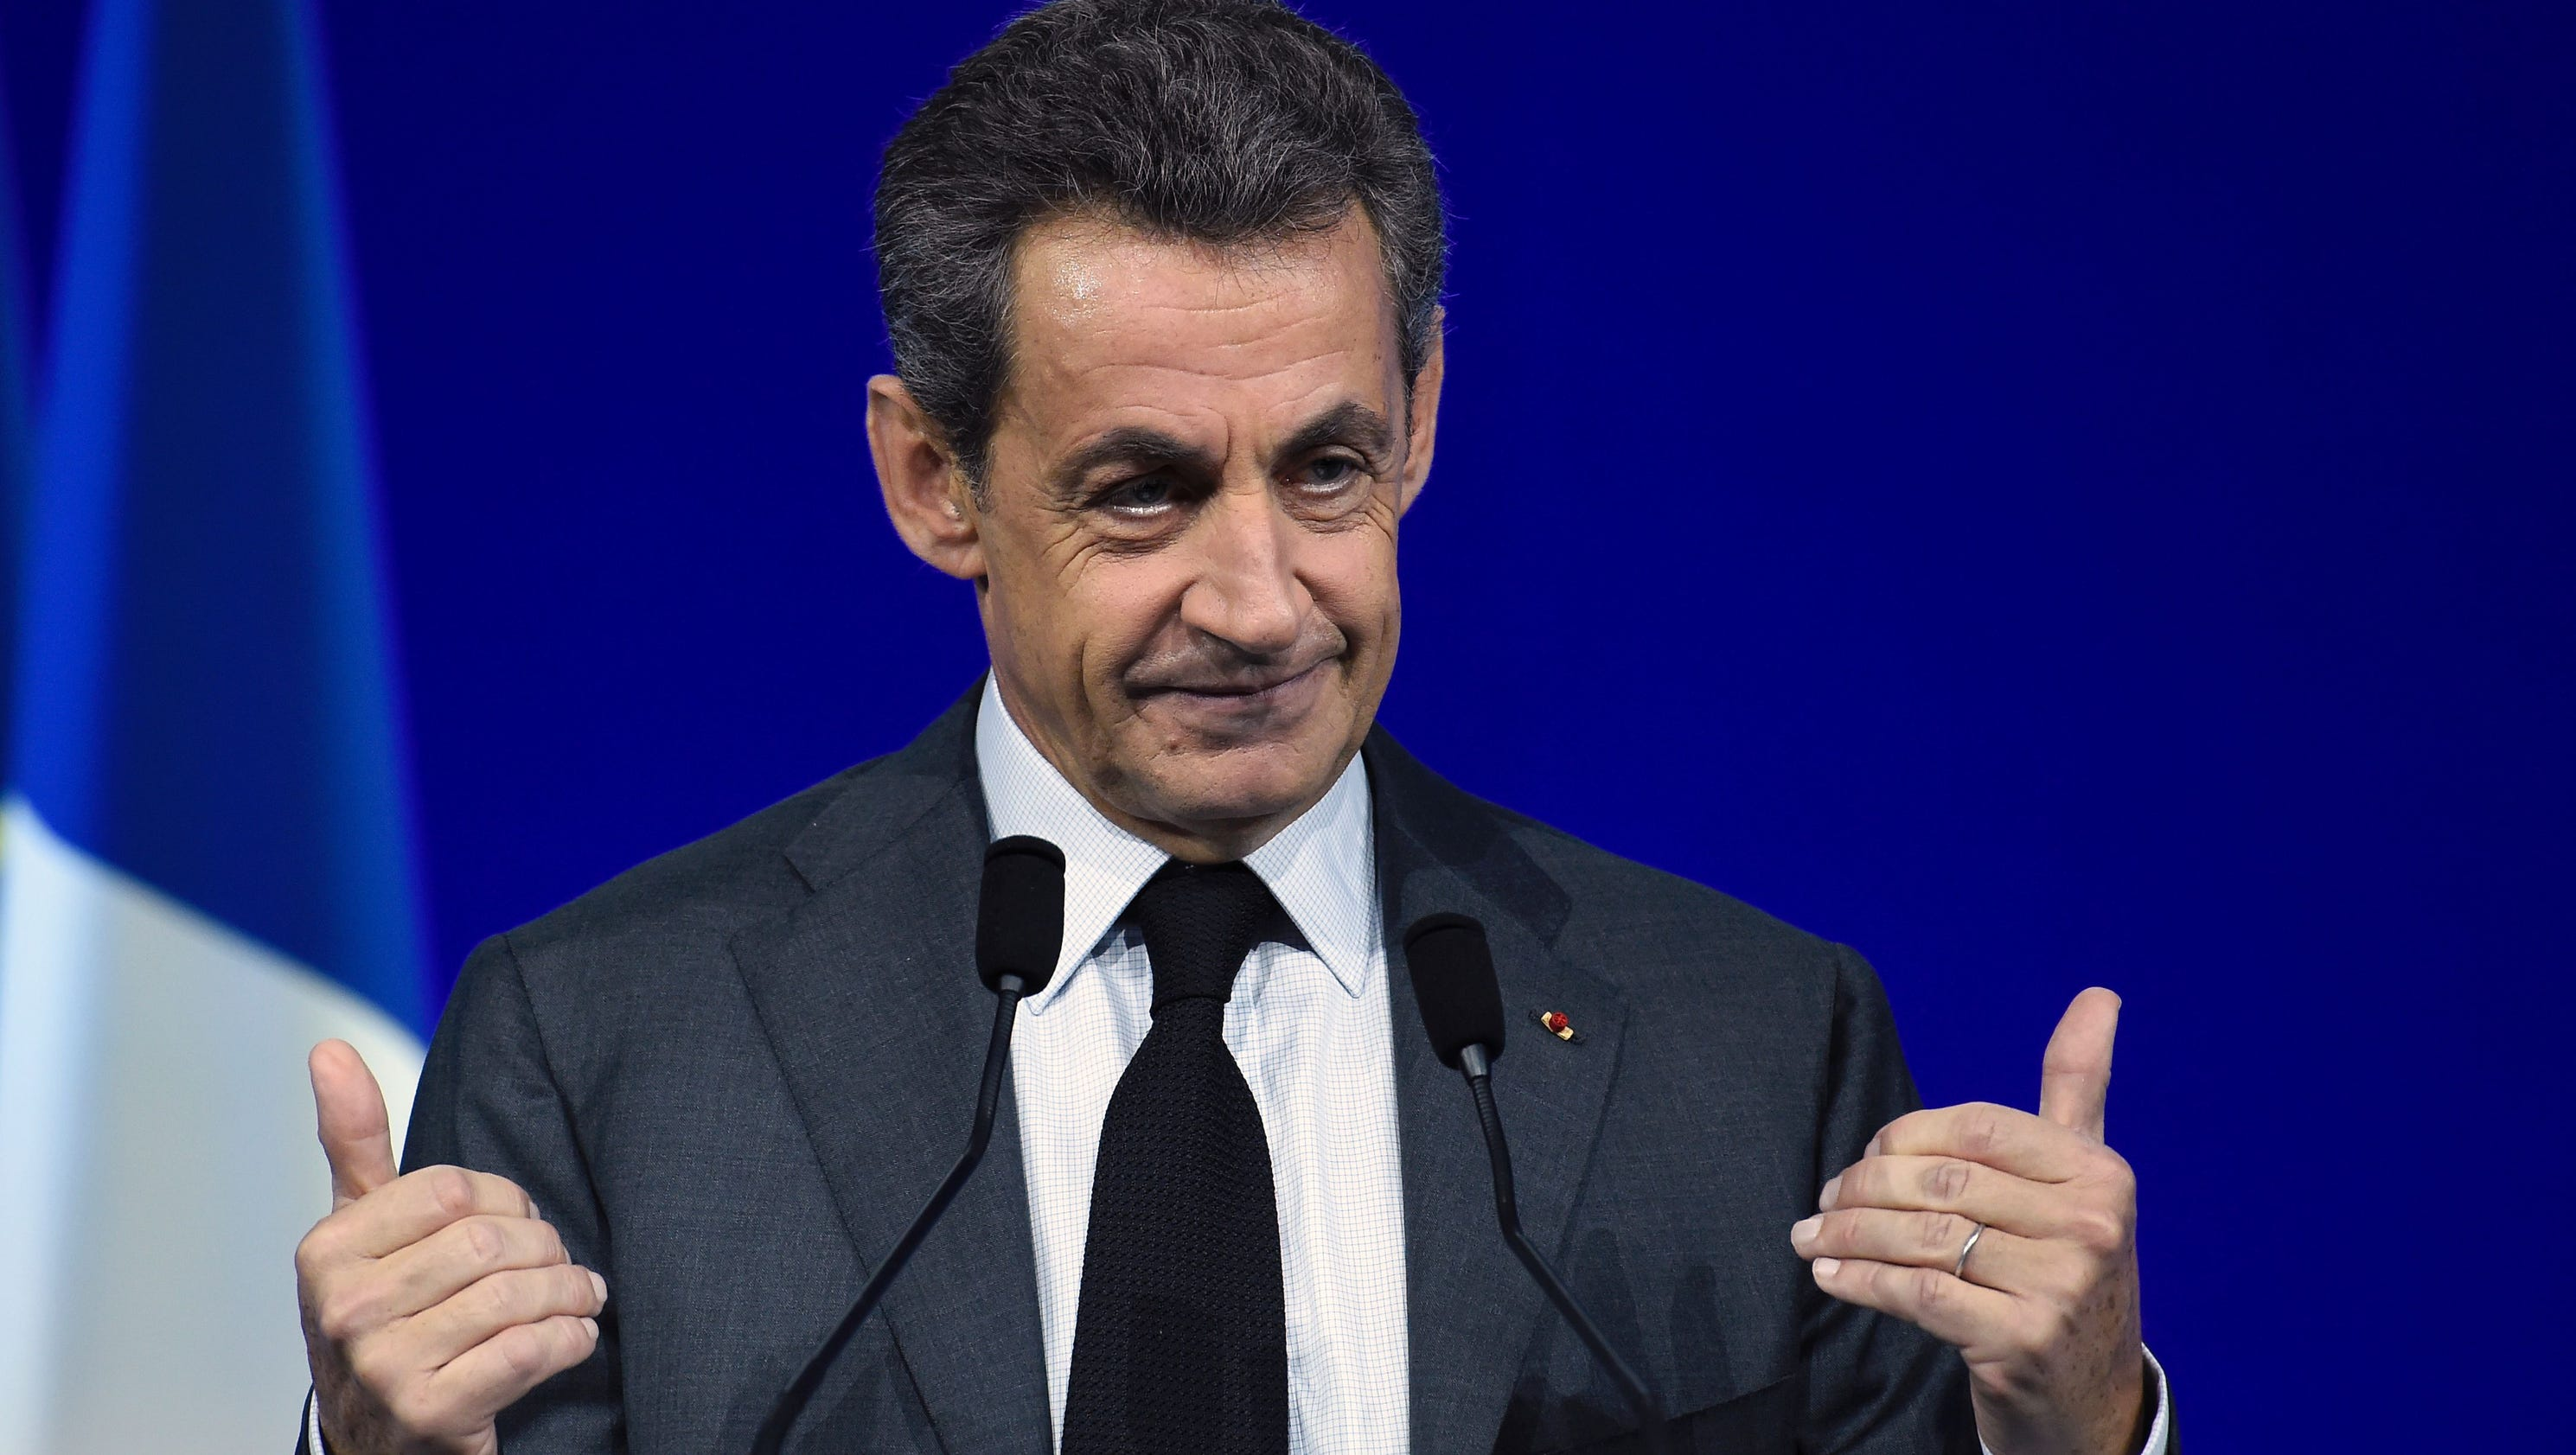 sarkozy - photo #40